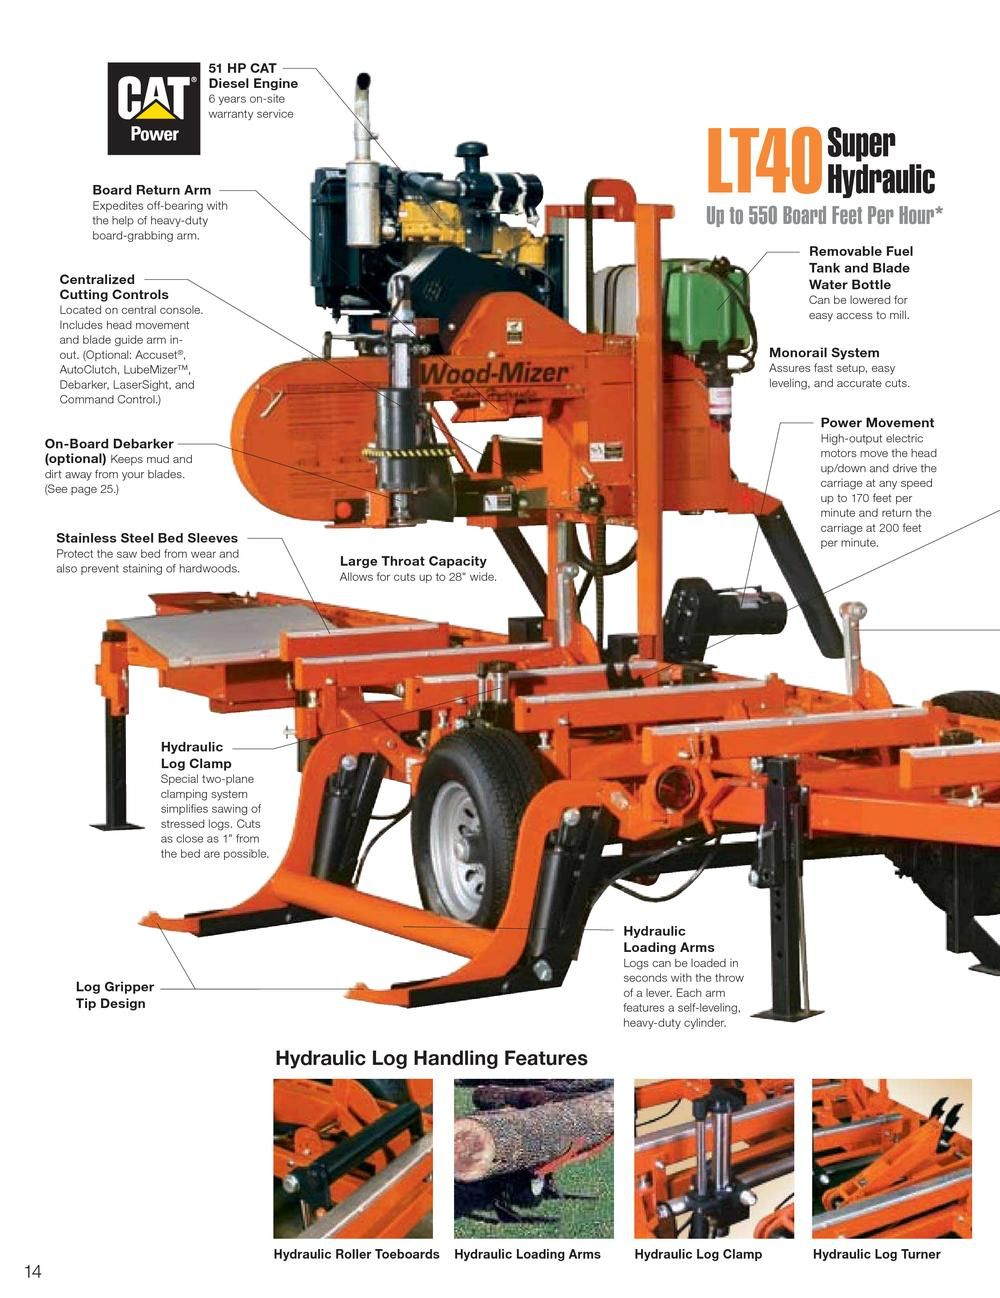 Woodmizer LT40 super hydraulic, a portable sawmill full